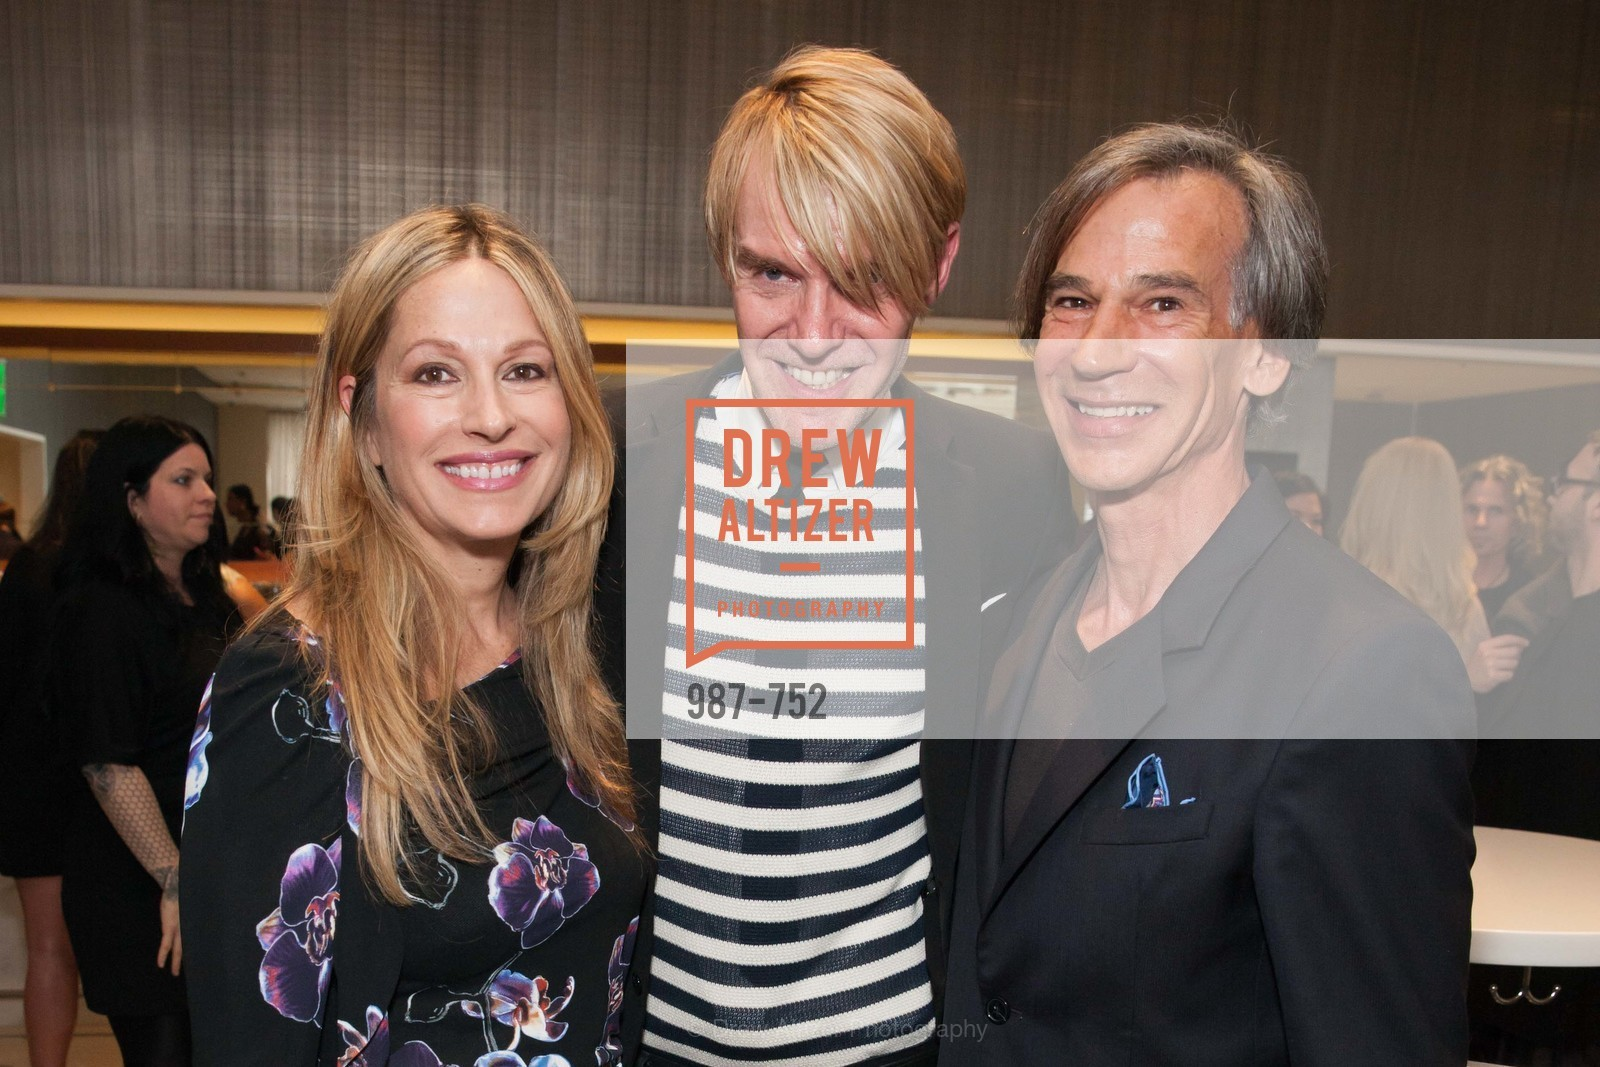 Carolyne Zinko, Ken Downing, Dan Dieguez, Electric Fashion Book Signing with Christine Suppes & Ken Downing at THE ROTUNDA, NEIMAN MARCUS, Neiman Marcus, Rotunda, May 27th, 2015,Drew Altizer, Drew Altizer Photography, full-service agency, private events, San Francisco photographer, photographer california